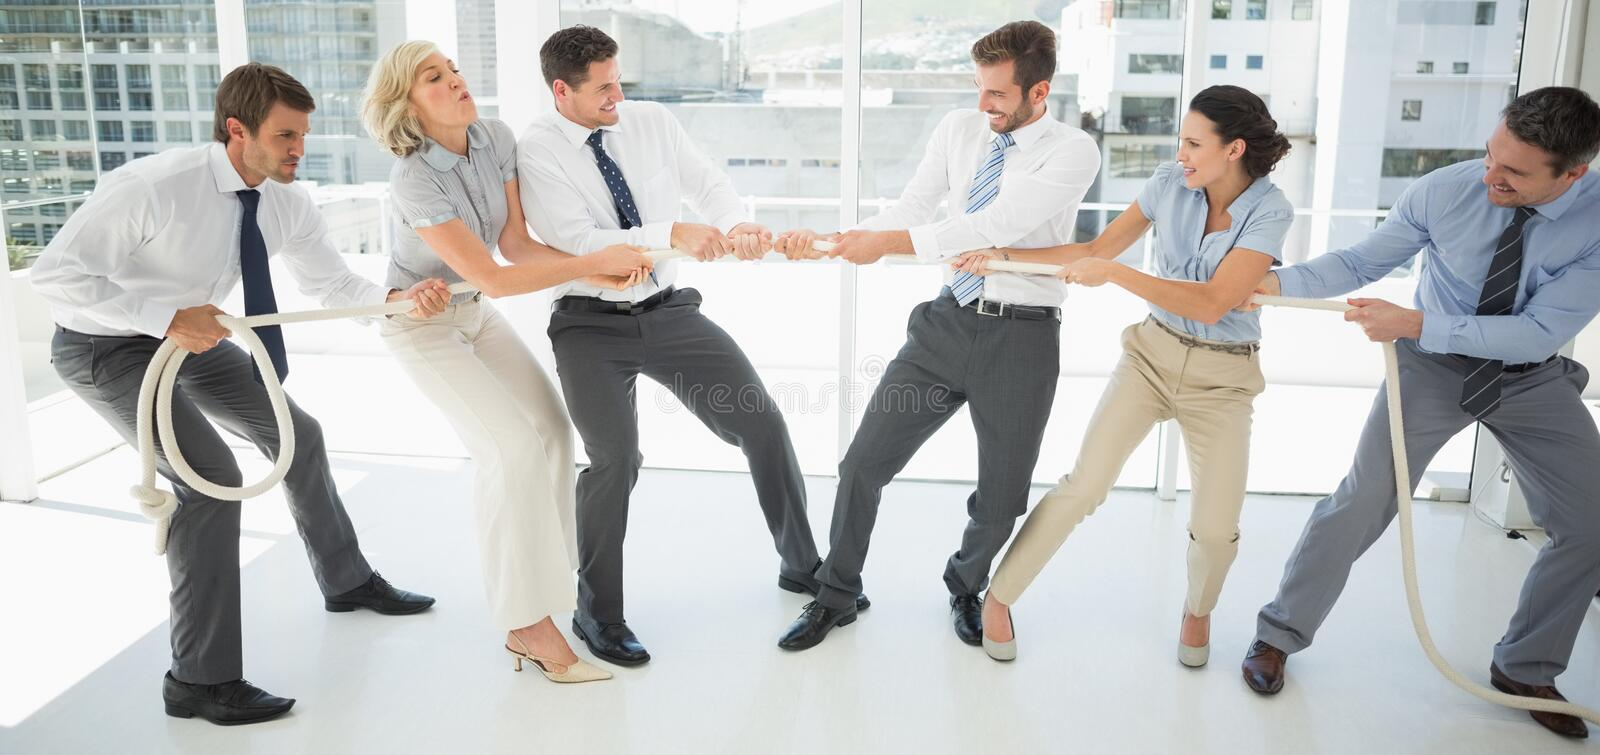 Business people playing tug of war in office royalty free stock photo